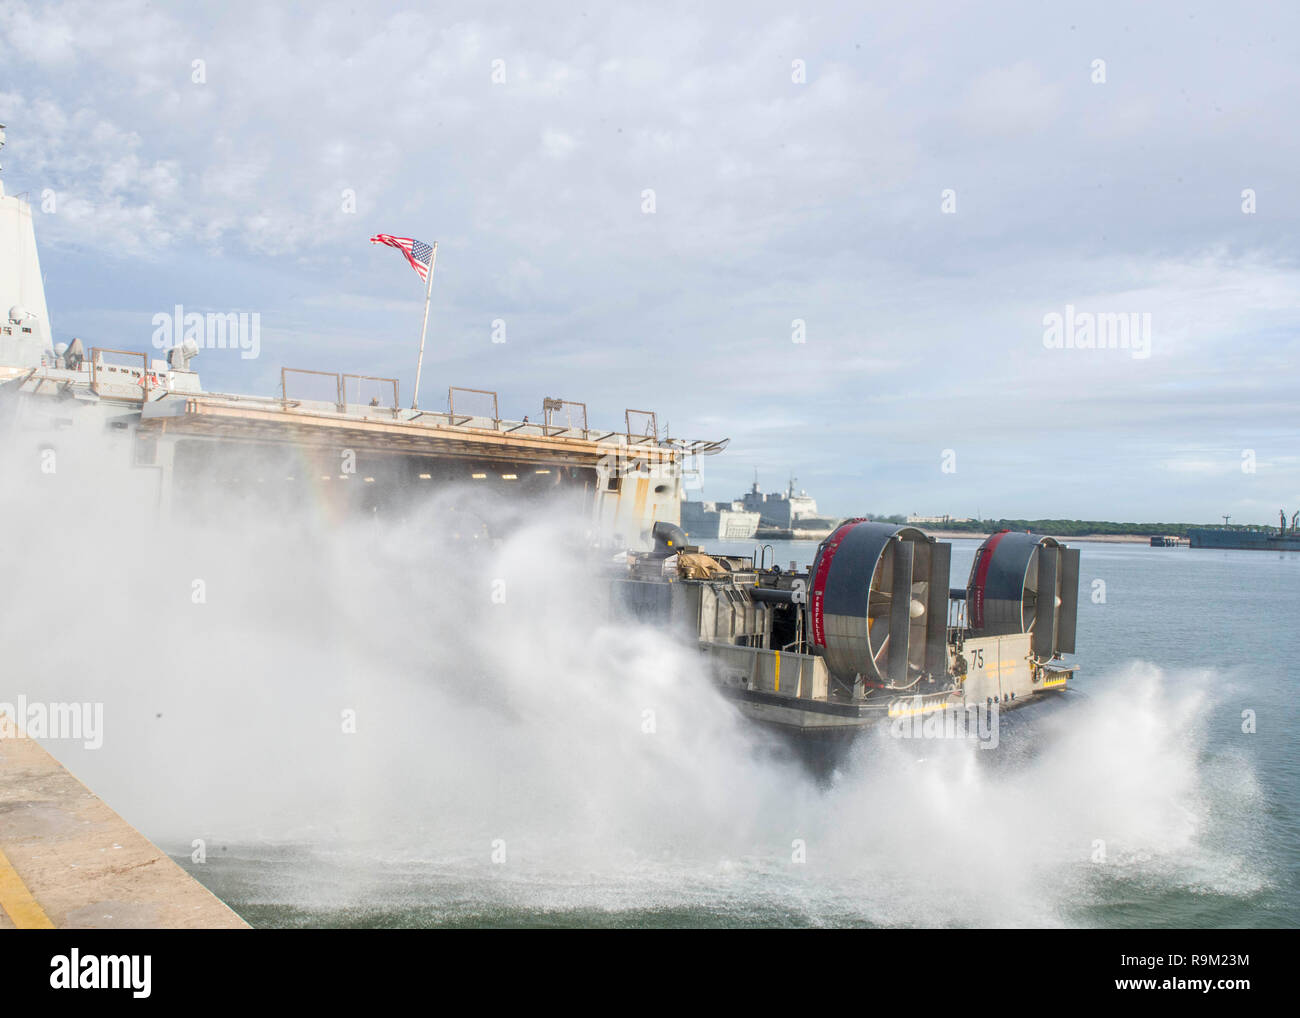 181124-N-PH222-1046 ROTA, SPAIN (Nov. 24, 2018) Landing Craft, Air Cushion (LCAC) 75, attached to Assault Craft Unit 5, disembarks the well deck of the San Antonio-class amphibious transport dock ship USS Anchorage (LPD 23) in Rota, Spain, Nov. 24, 2018. Anchorage and embarked 13th Marine Expeditionary Unit are deployed to the U.S. 6th Fleet area of operations as a crisis response force in support of regional partners as well as to promote U.S. national security interests in Europe and Africa. (U.S. Navy photo by Mass Communication Specialist 3rd Class Ryan M. Breeden/Released) - Stock Image